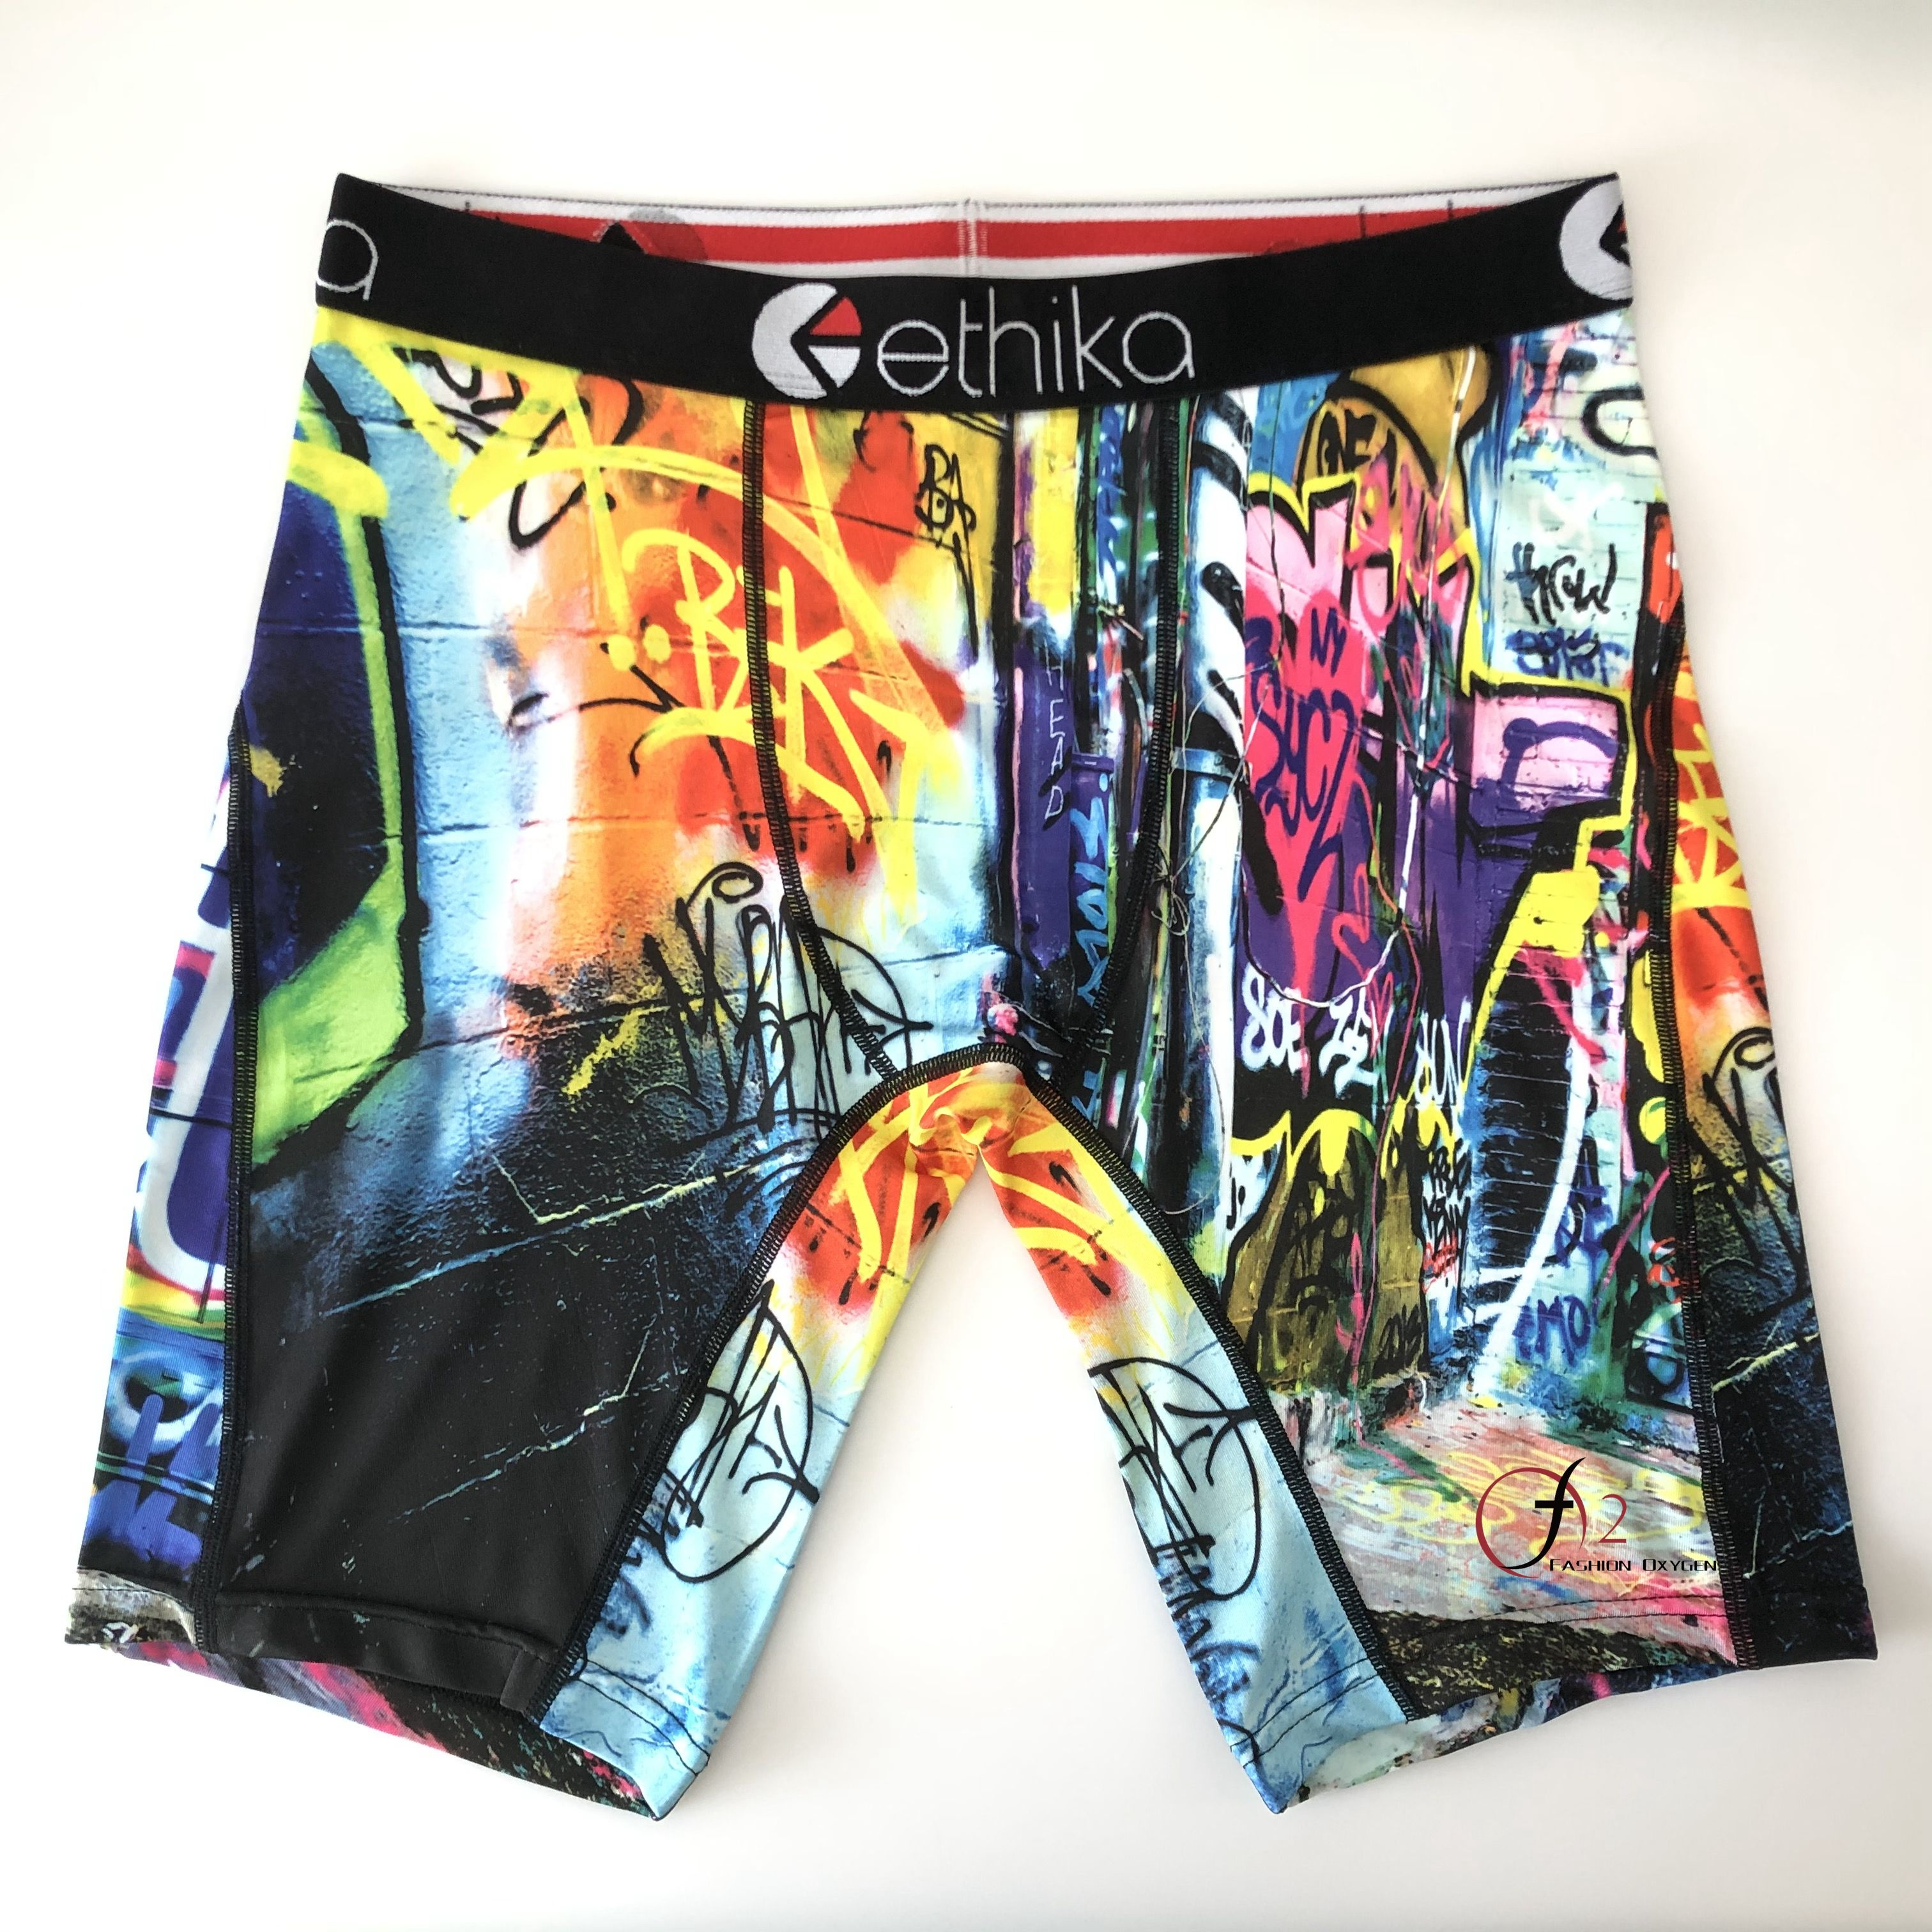 OEM Limited styles Graffiti art underwear 3 inch or 5 inch shorts <strong>men</strong> culture <strong>boxer</strong> <strong>briefs</strong> man most popular underwear <strong>for</strong> <strong>mens</strong>